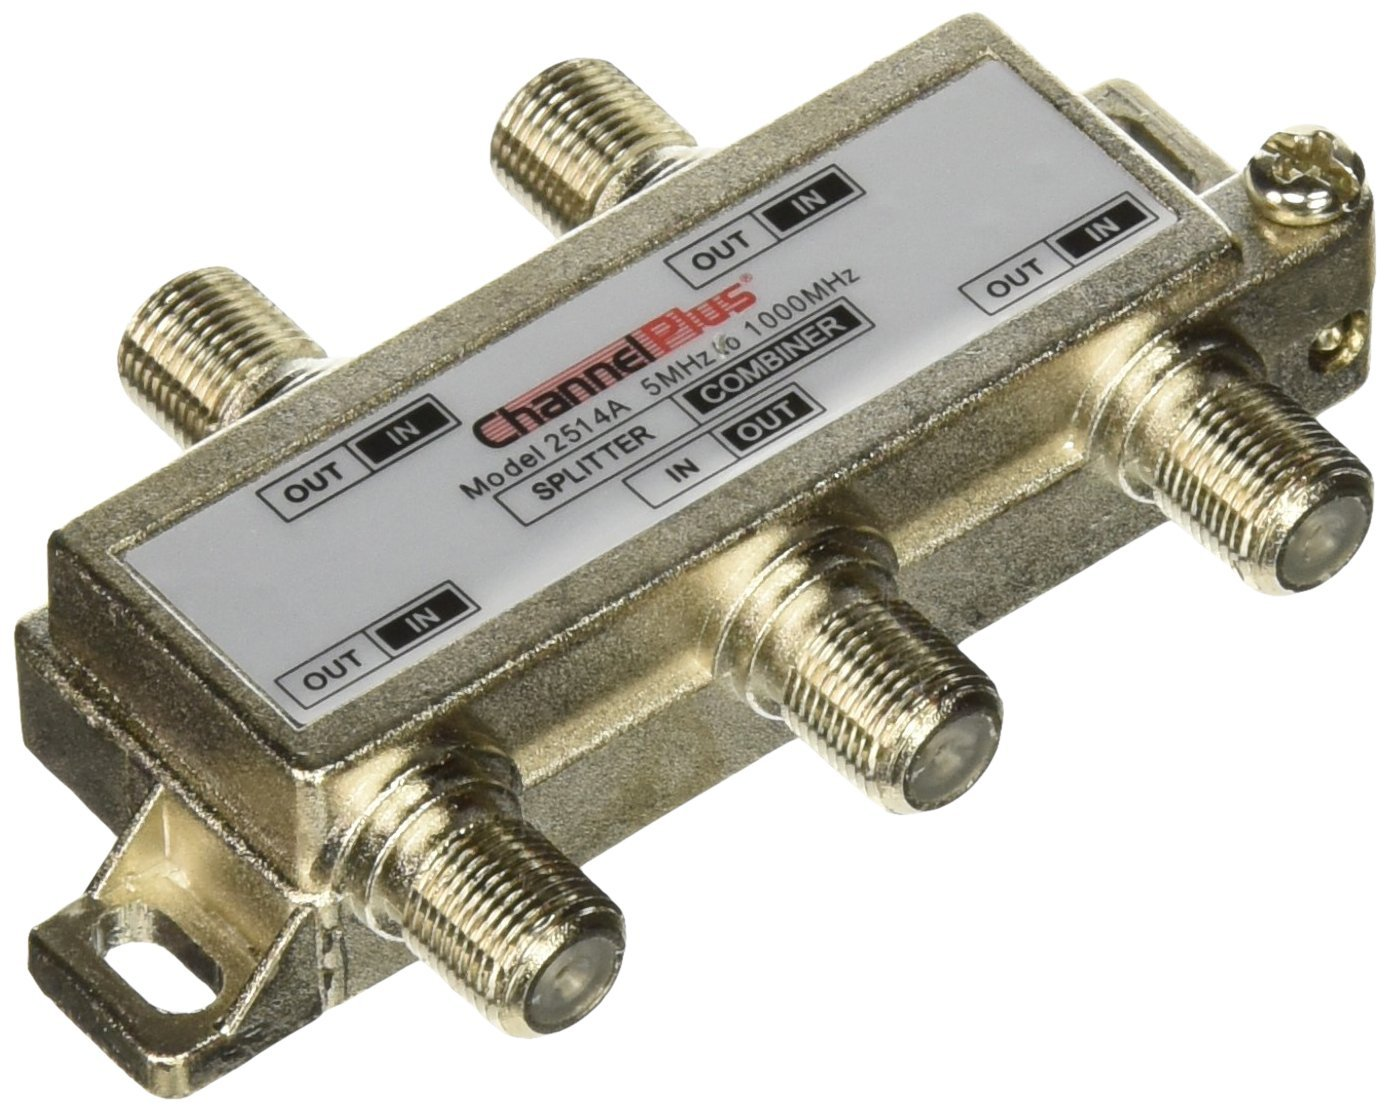 Linear 2514 ChannelPlus DC & IR Passing 4-Way Splitter/Combiner by ChannelPlus